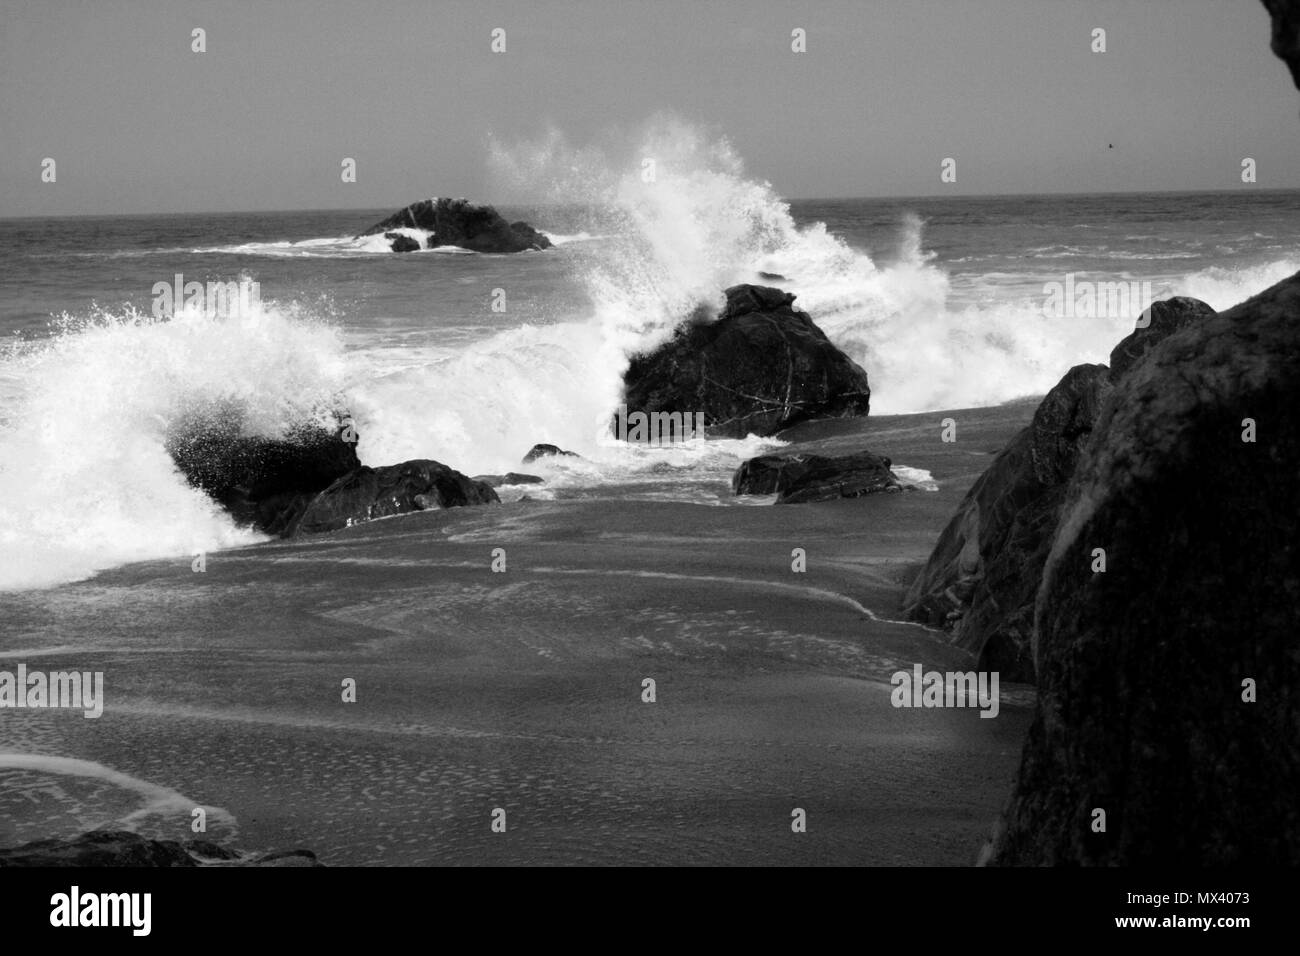 Wawes at the Pacific Ocean - Stock Image